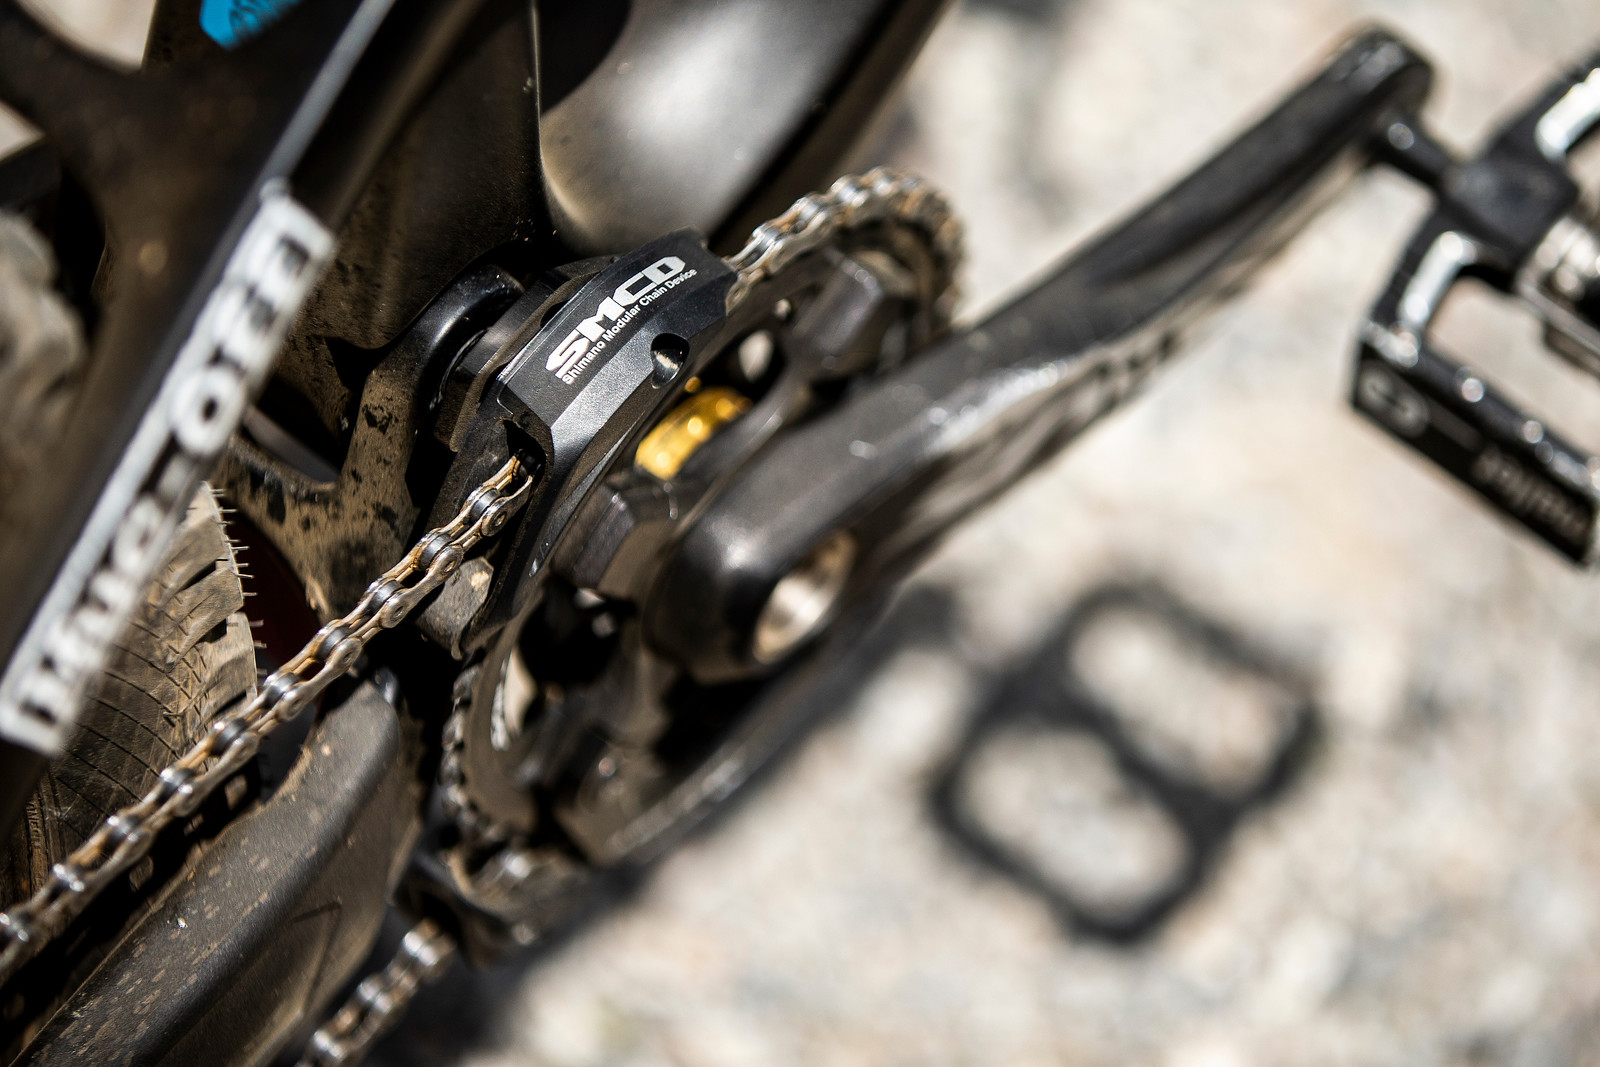 Shimano SMCD Chain Guide - WINNING BIKE - Tahnee Seagrave's Transition TR11 - Mountain Biking Pictures - Vital MTB